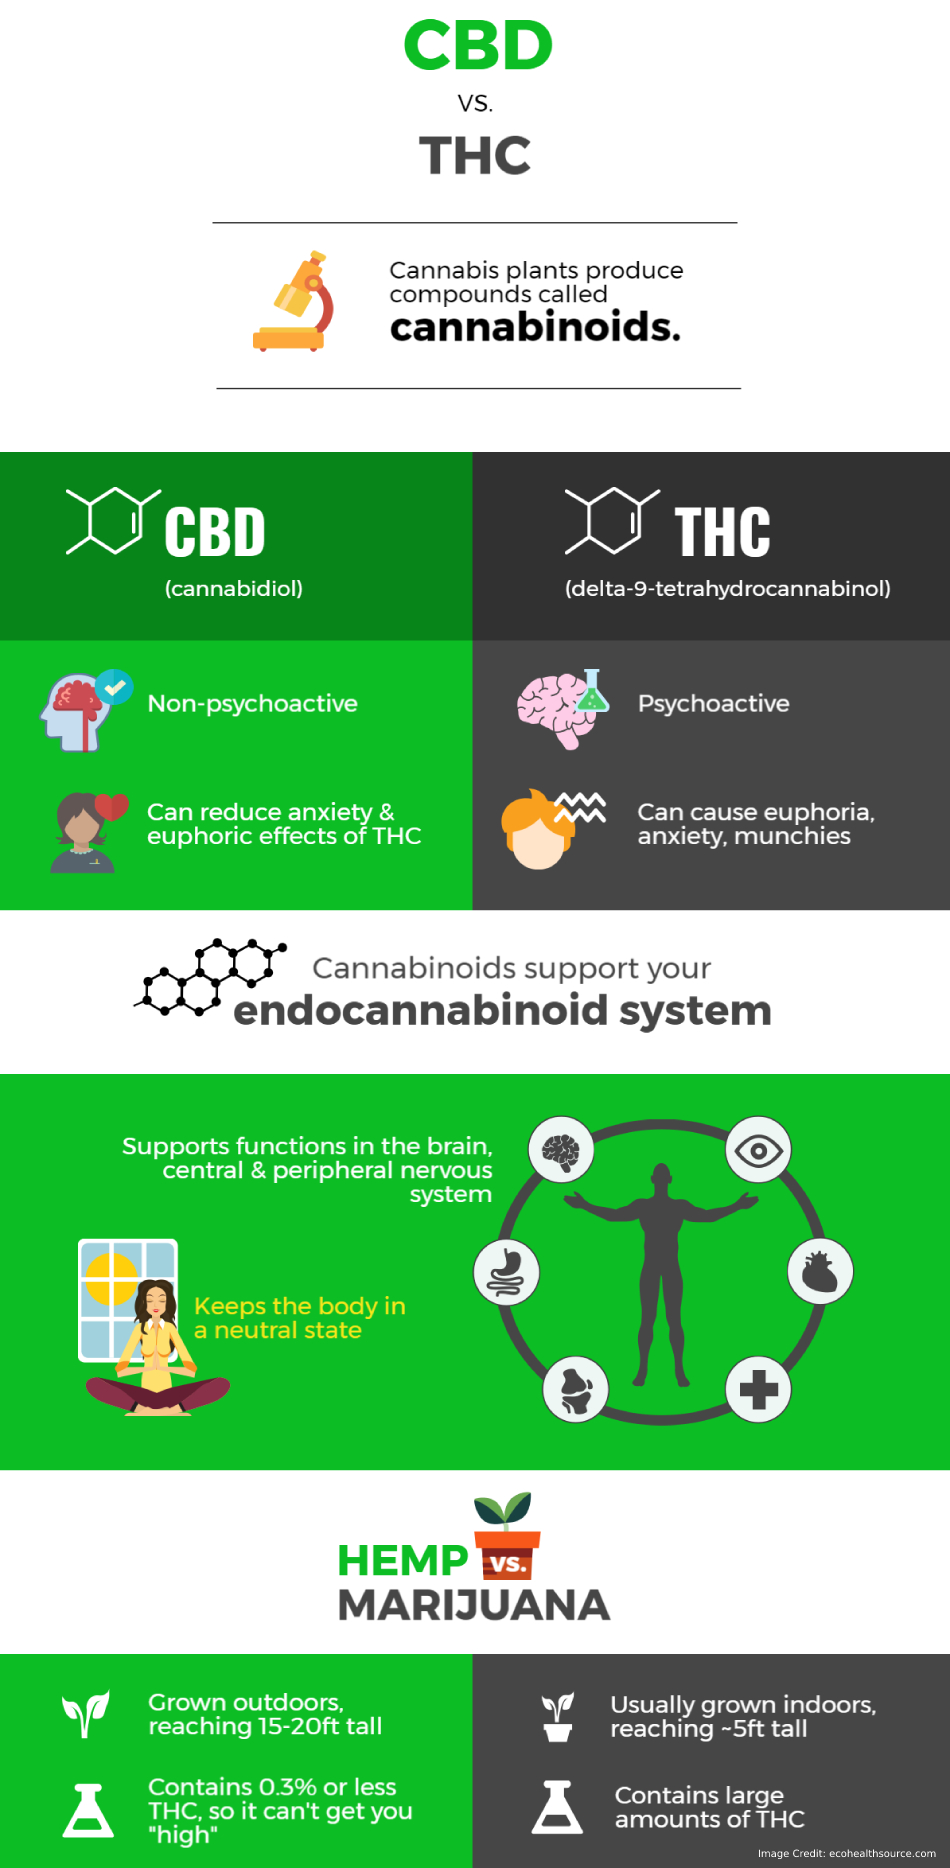 Where Does Thc Come